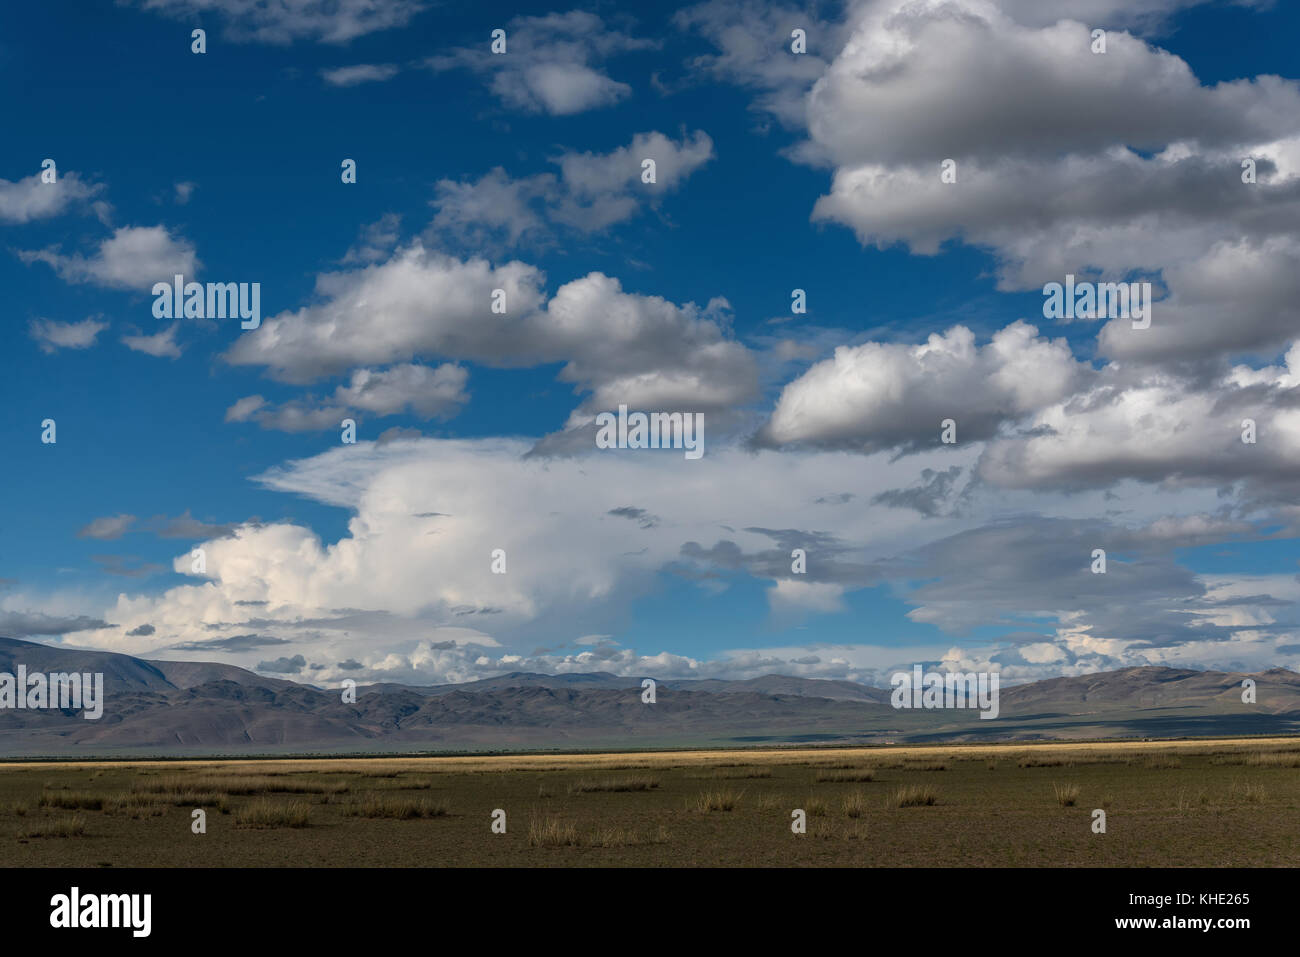 Scenic view of the steppe, mountains and sparse vegetation on the background of blue sky and clouds - Stock Image